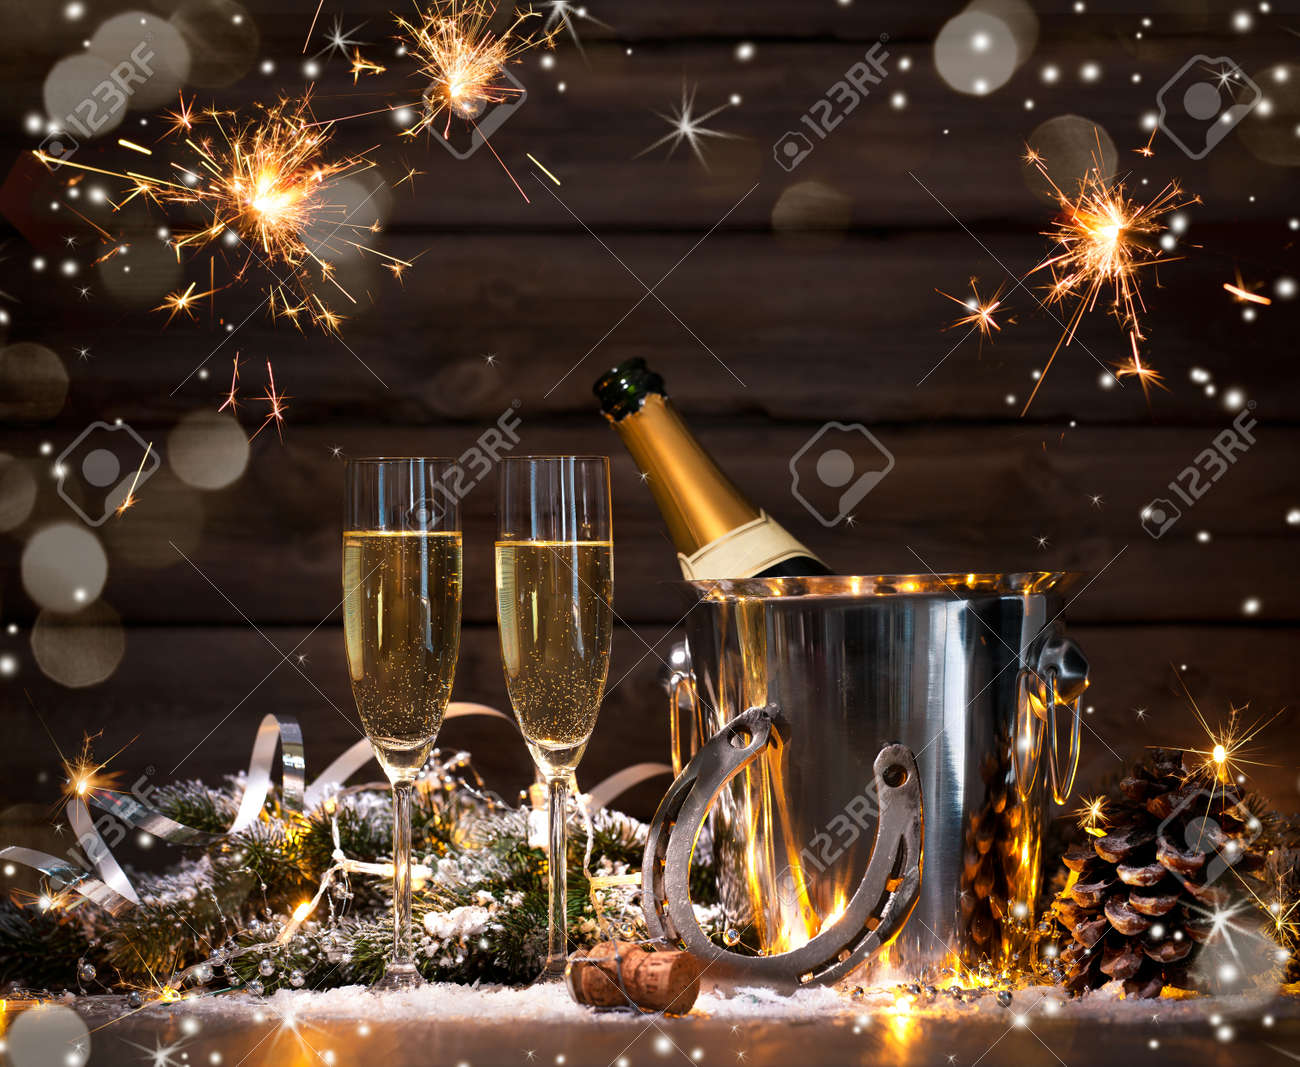 New Years Eve celebration background with pair of flutes and bottle of champagne in bucket and a horseshoe as lucky charm Stock Photo - 50199449